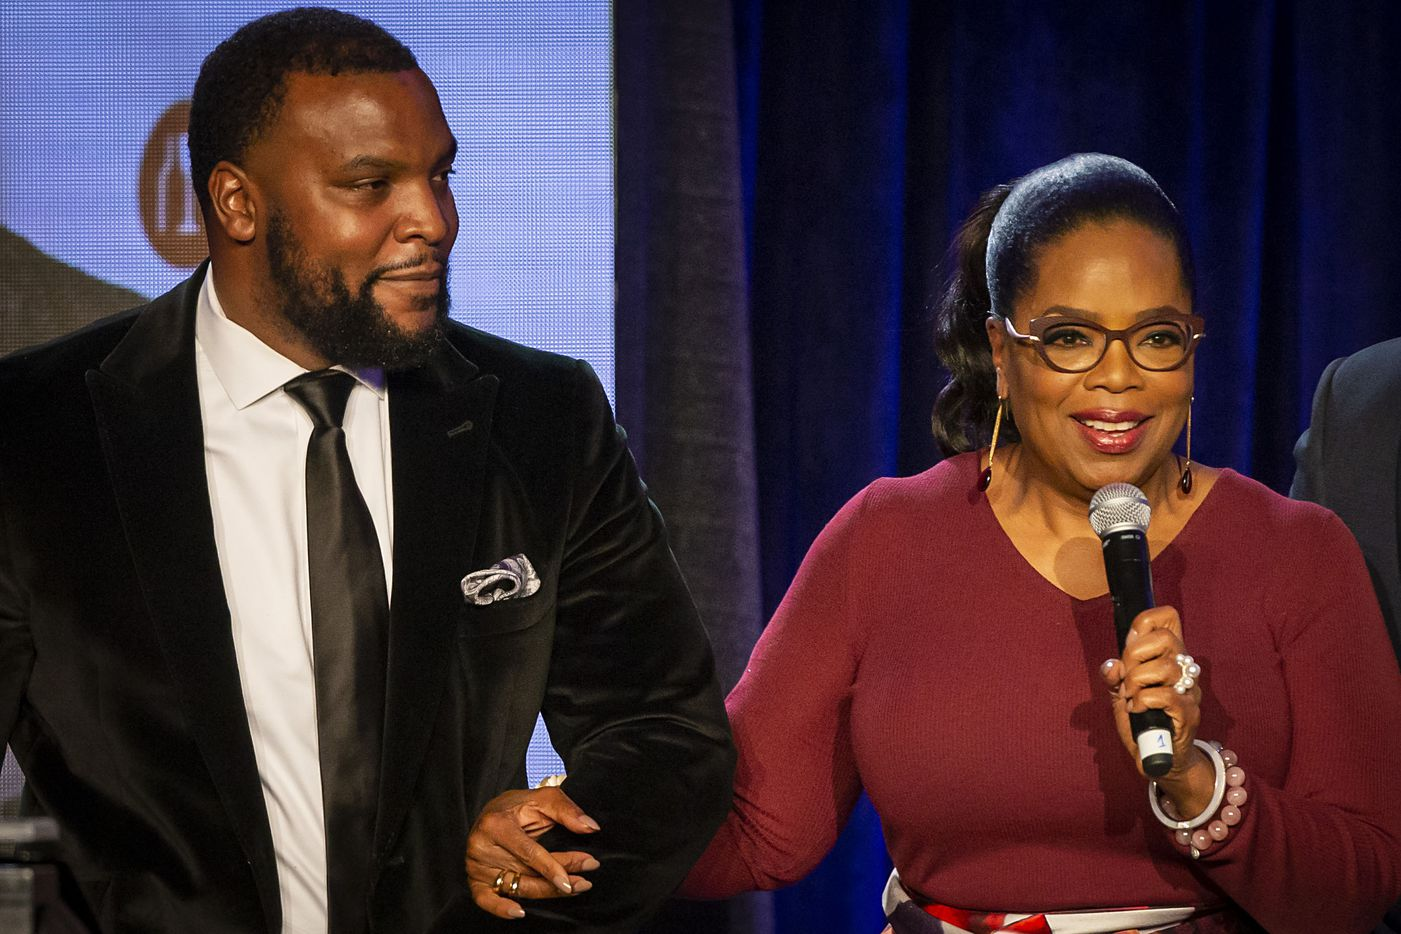 Civil rights attorney Lee Merritt takes the stage with Oprah Winfrey to pledge a $20,000 donation during the Minnie's Food Pantry 10th Anniversary 'Feed Just One Gala' at the Omni Frisco Hotel on Tuesday, April 3, 2018, in Frisco.